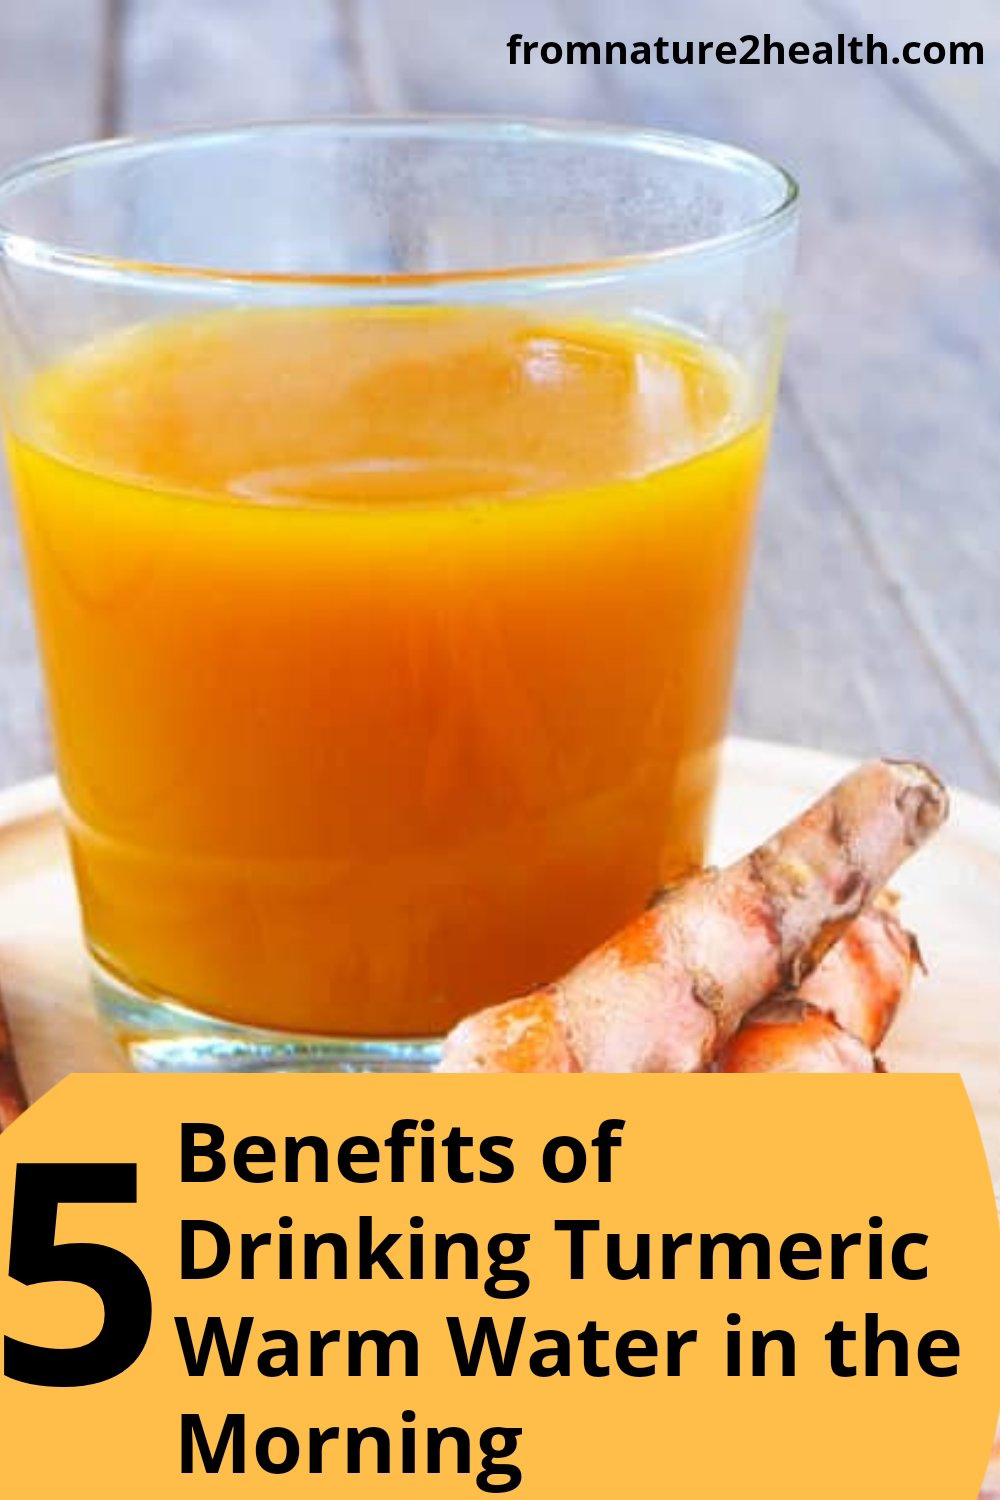 Drinking turmeric warm water every morning can also reduce the risk of cancer